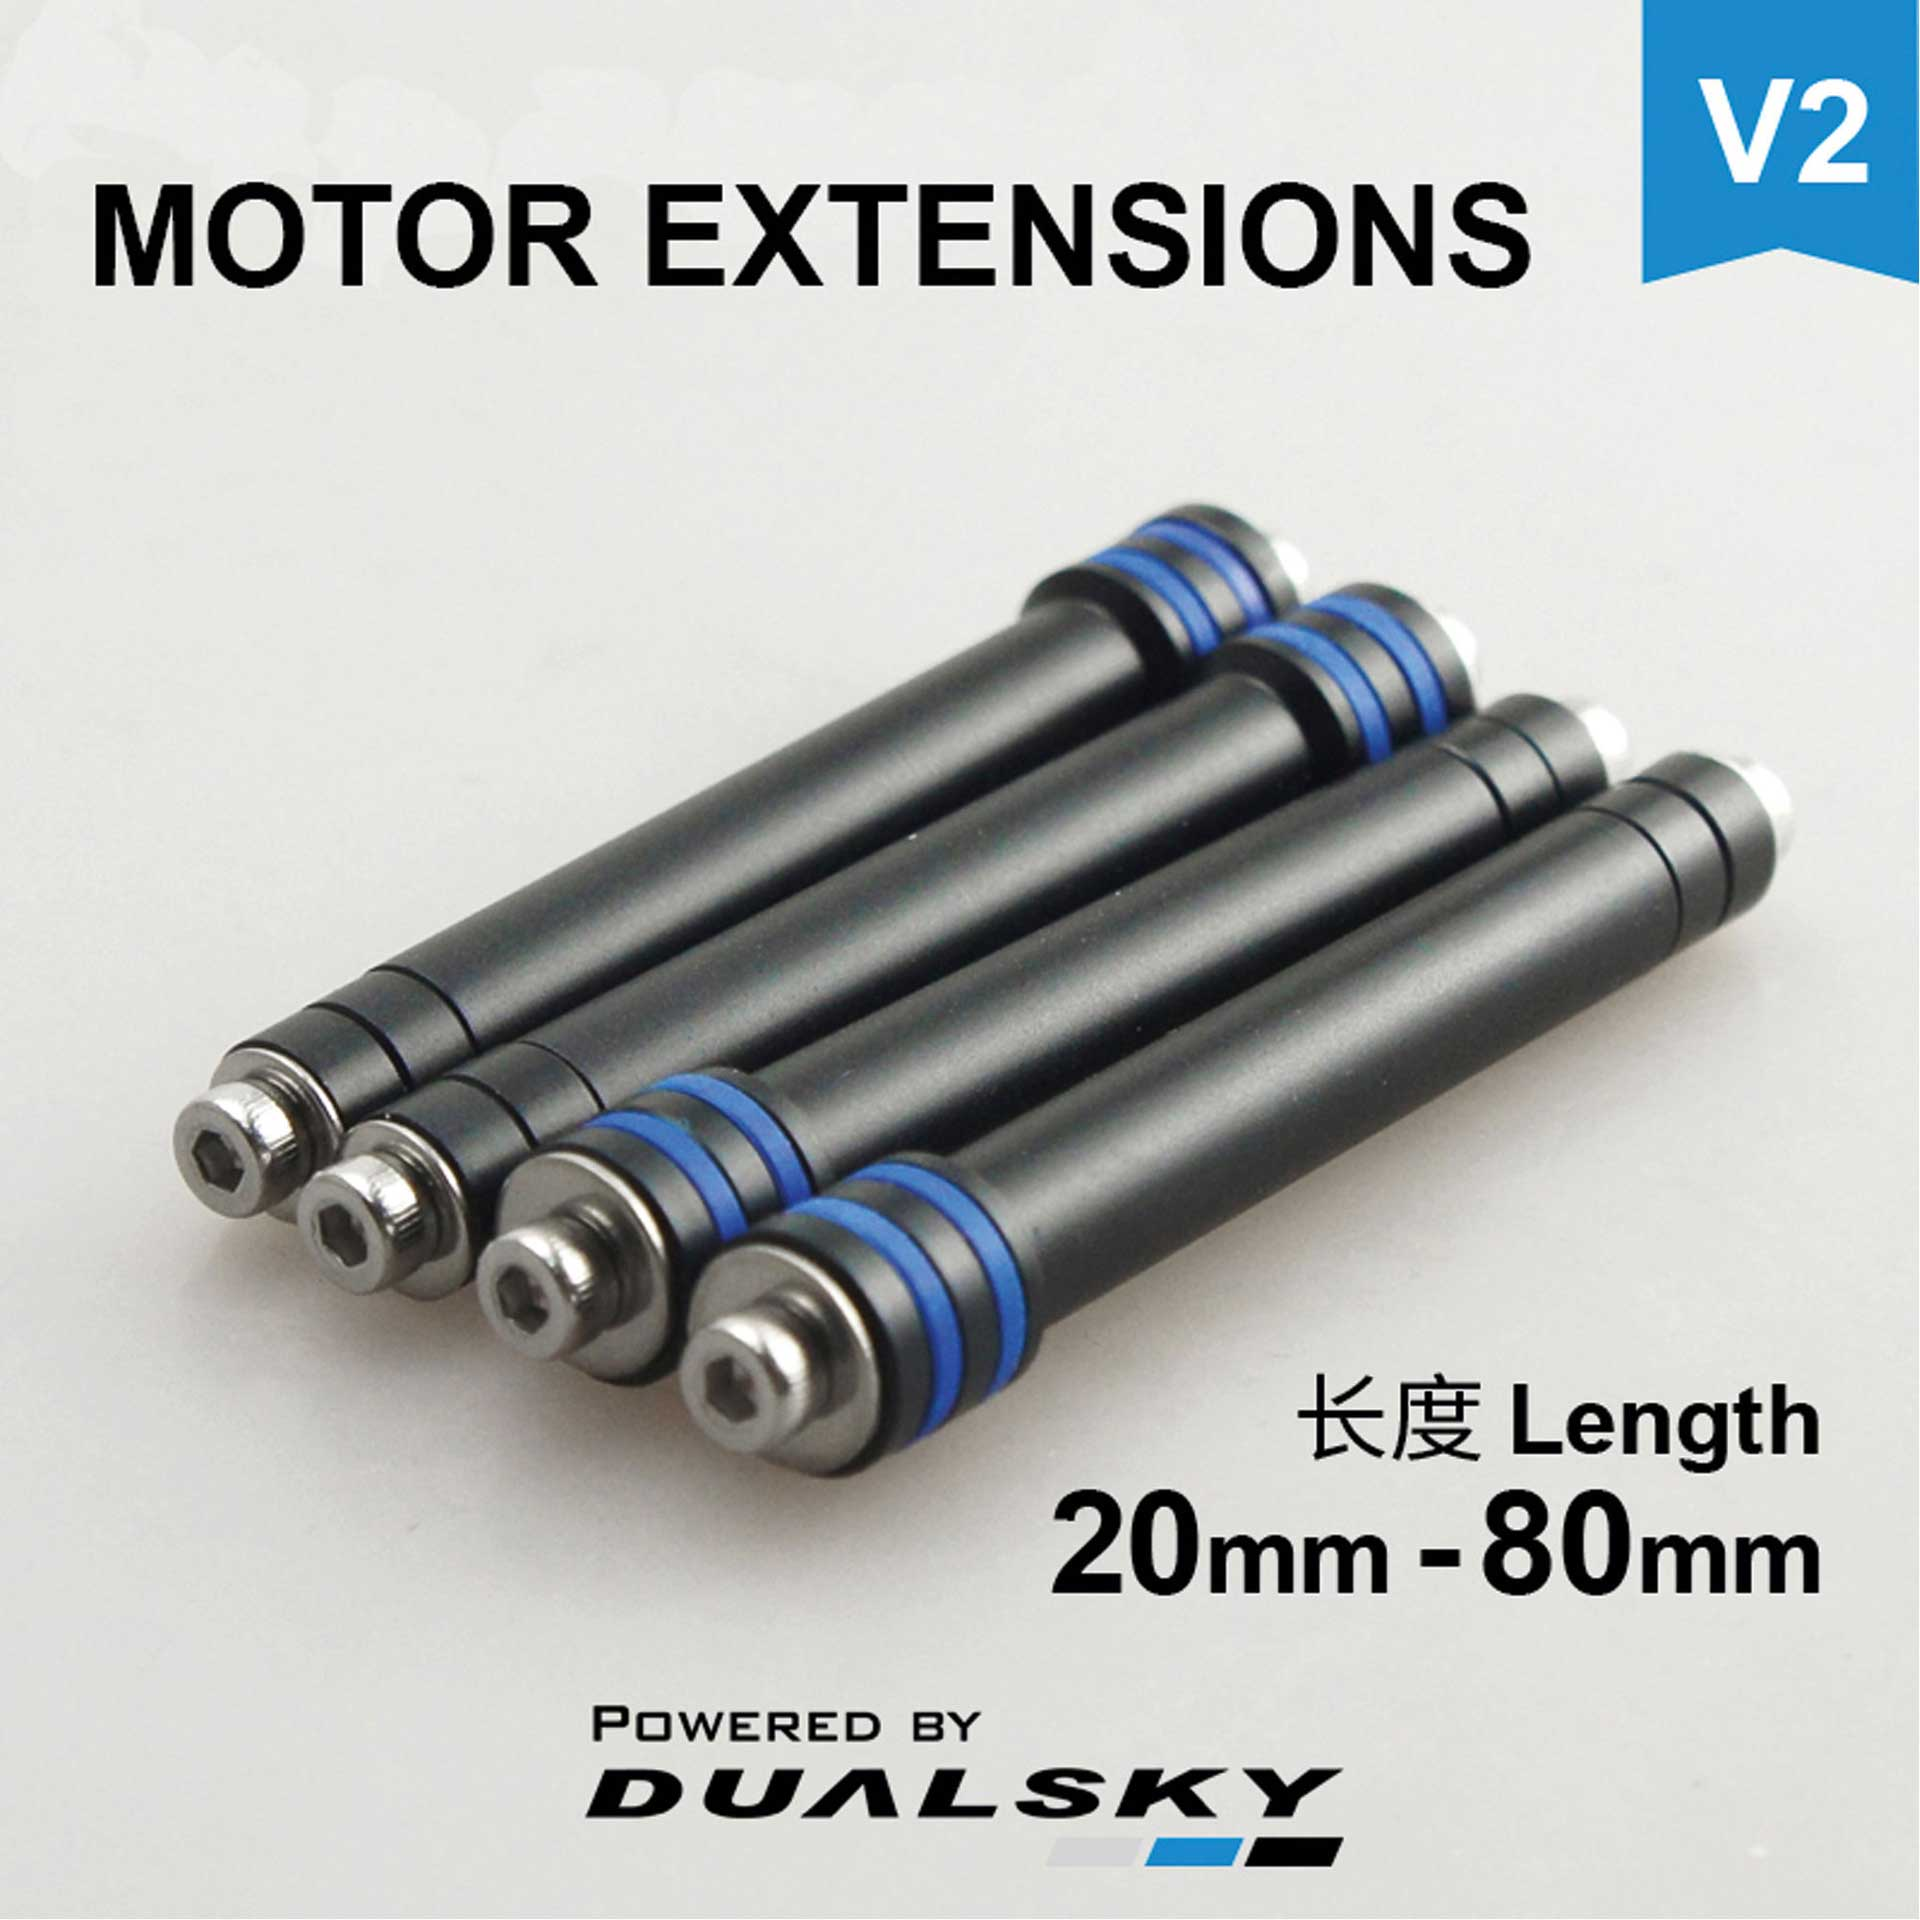 DUALSKY MOTOR EXTENSIONS V3 ME3-40 LENGTH 20 TO 40MM ADJUSTABLE WITH SCREWS stand off